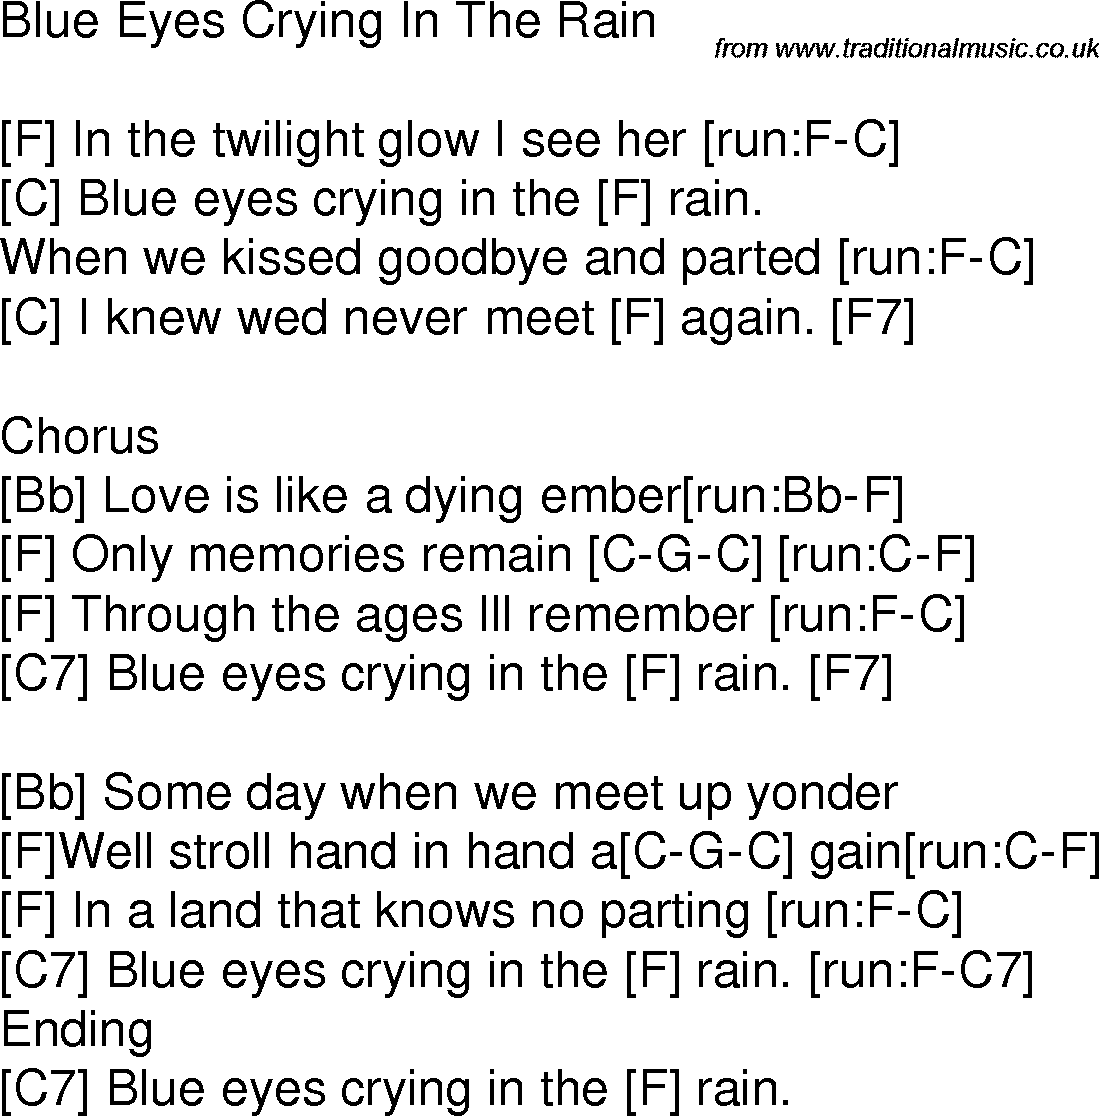 Old Time Song Lyrics With Chords For Blue Eyes Crying In The Rain F